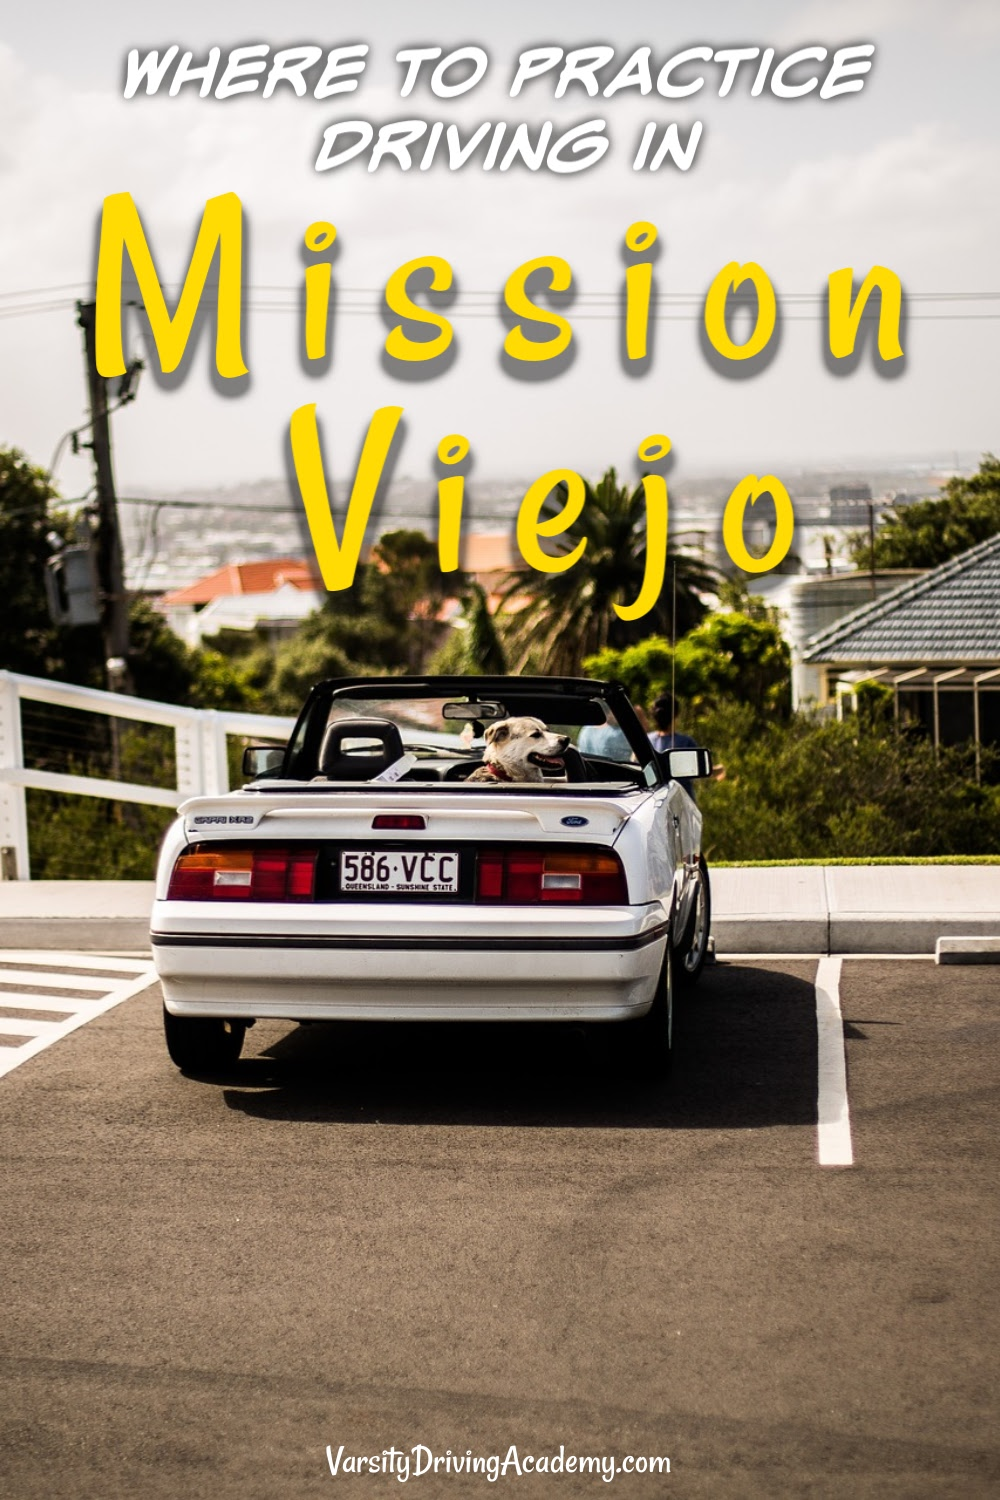 Teens and adults will need to know where to practice driving in Mission Viejo if they want to practice in a safe location.